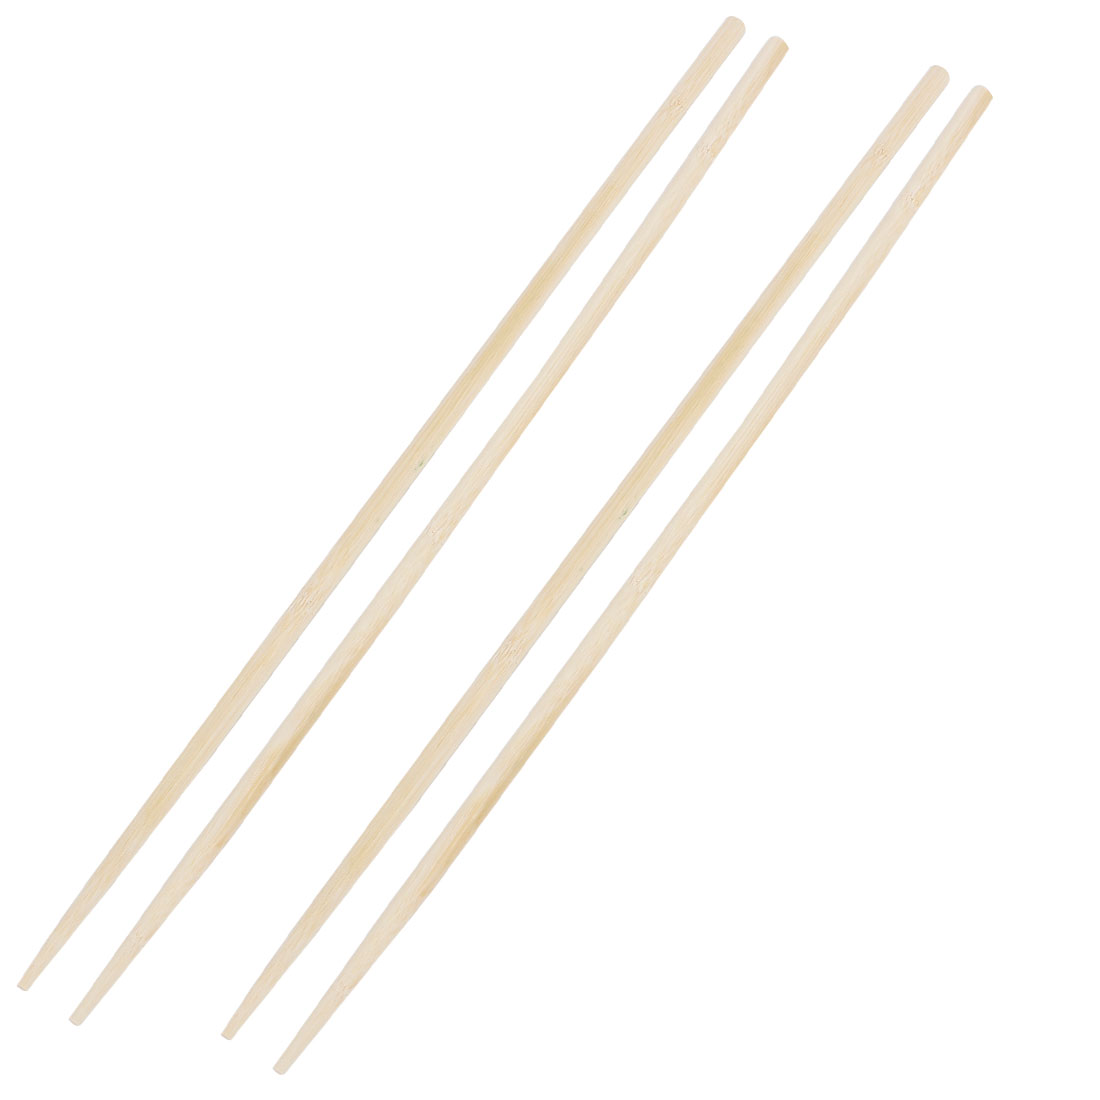 "2 Pairs Beige Wooden Noodles Cooking Chopsticks 45cm 18"" Length"